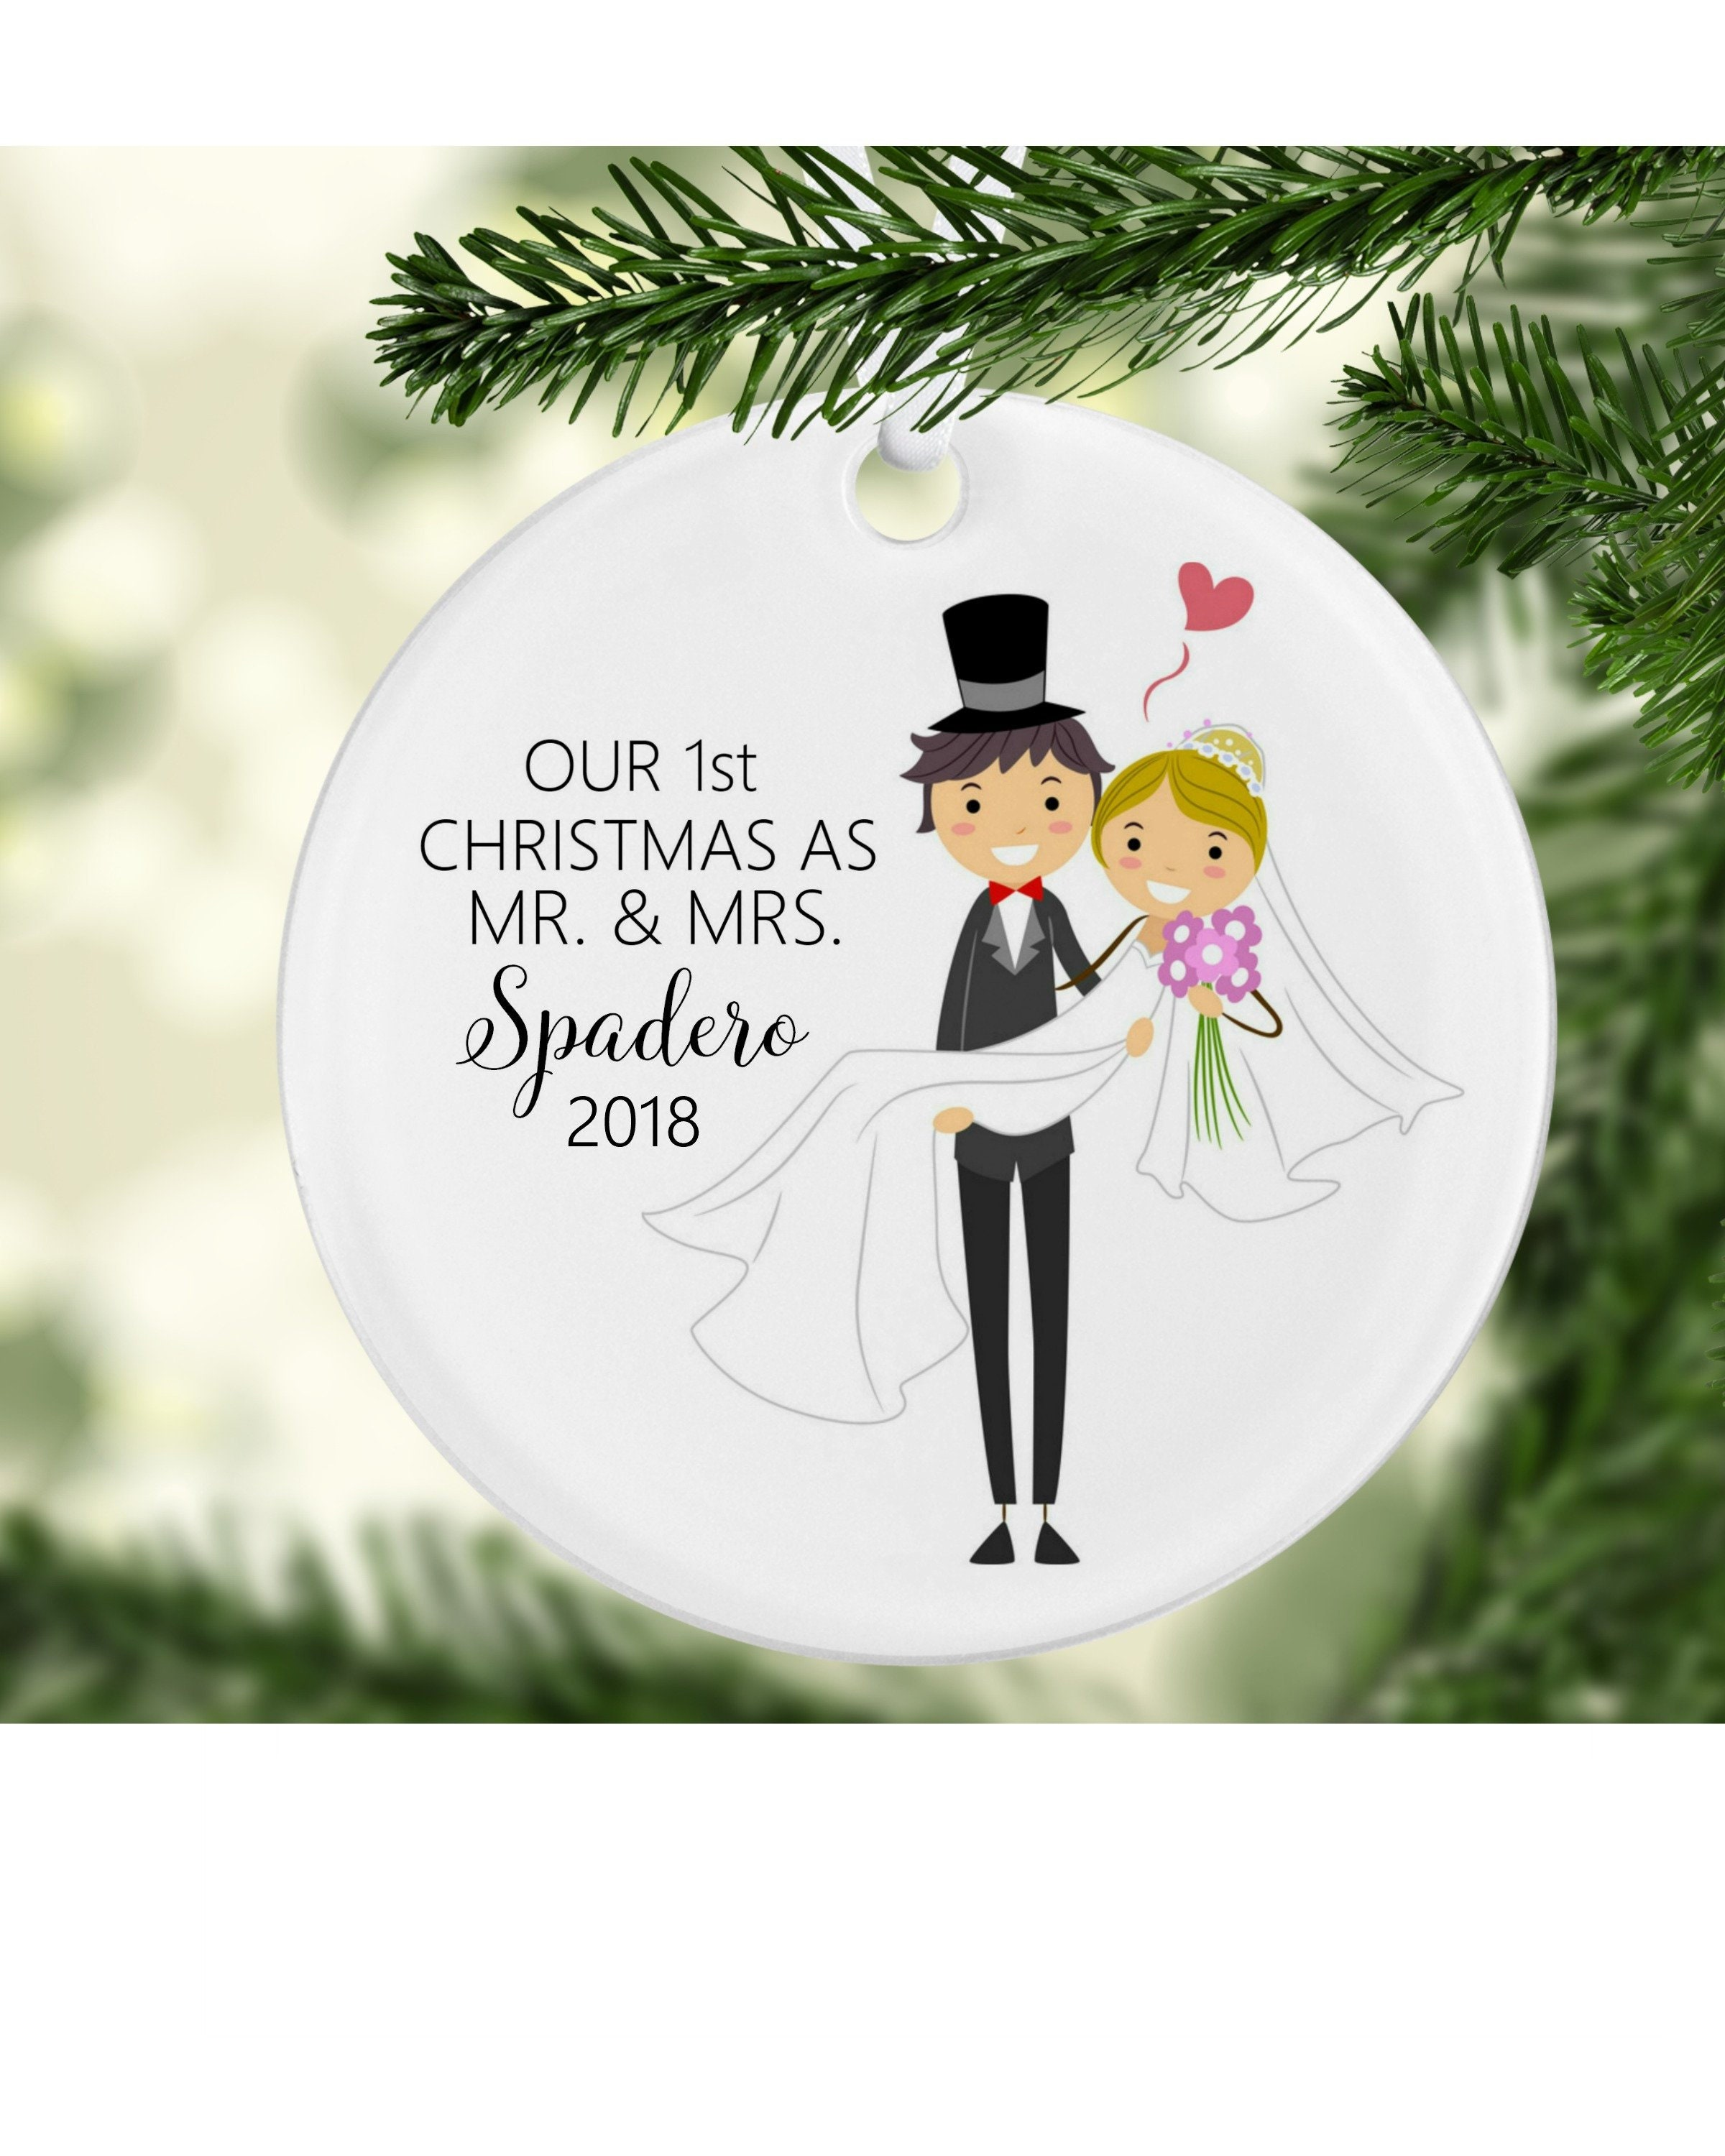 Our First Christmas Ornament Bride Groom Stick Figures Our Etsy